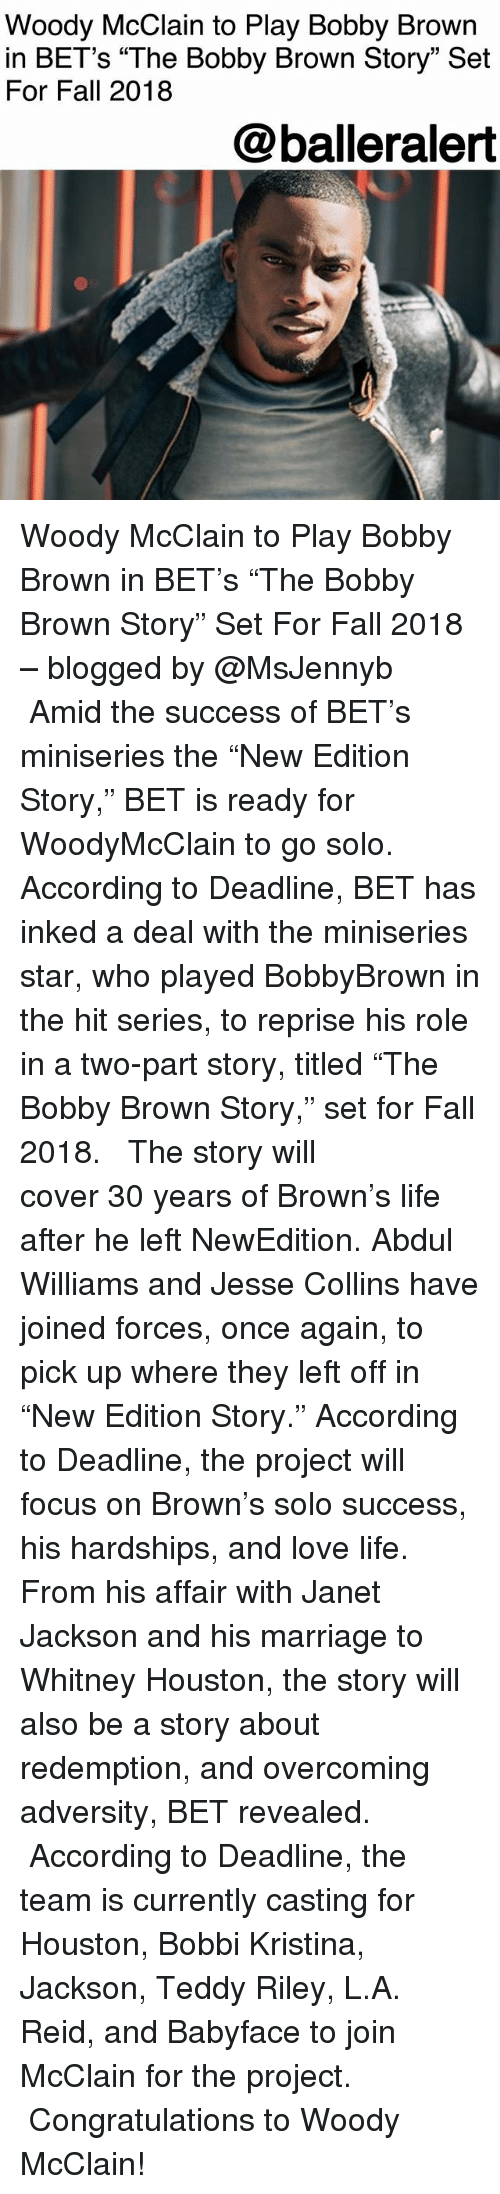 "adversity: Woody McClain to Play Bobby Brown  in BET's ""The Bobby Brown Story"" Set  For Fall 2018  @balleralert Woody McClain to Play Bobby Brown in BET's ""The Bobby Brown Story"" Set For Fall 2018 – blogged by @MsJennyb ⠀⠀⠀⠀⠀⠀⠀ ⠀⠀⠀⠀⠀⠀⠀ Amid the success of BET's miniseries the ""New Edition Story,"" BET is ready for WoodyMcClain to go solo. According to Deadline, BET has inked a deal with the miniseries star, who played BobbyBrown in the hit series, to reprise his role in a two-part story, titled ""The Bobby Brown Story,"" set for Fall 2018. ⠀⠀⠀⠀⠀⠀⠀ ⠀⠀⠀⠀⠀⠀⠀ The story will cover 30 years of Brown's life after he left NewEdition. Abdul Williams and Jesse Collins have joined forces, once again, to pick up where they left off in ""New Edition Story."" According to Deadline, the project will focus on Brown's solo success, his hardships, and love life. From his affair with Janet Jackson and his marriage to Whitney Houston, the story will also be a story about redemption, and overcoming adversity, BET revealed. ⠀⠀⠀⠀⠀⠀⠀ ⠀⠀⠀⠀⠀⠀⠀ According to Deadline, the team is currently casting for Houston, Bobbi Kristina, Jackson, Teddy Riley, L.A. Reid, and Babyface to join McClain for the project. ⠀⠀⠀⠀⠀⠀⠀ ⠀⠀⠀⠀⠀⠀⠀ Congratulations to Woody McClain!"